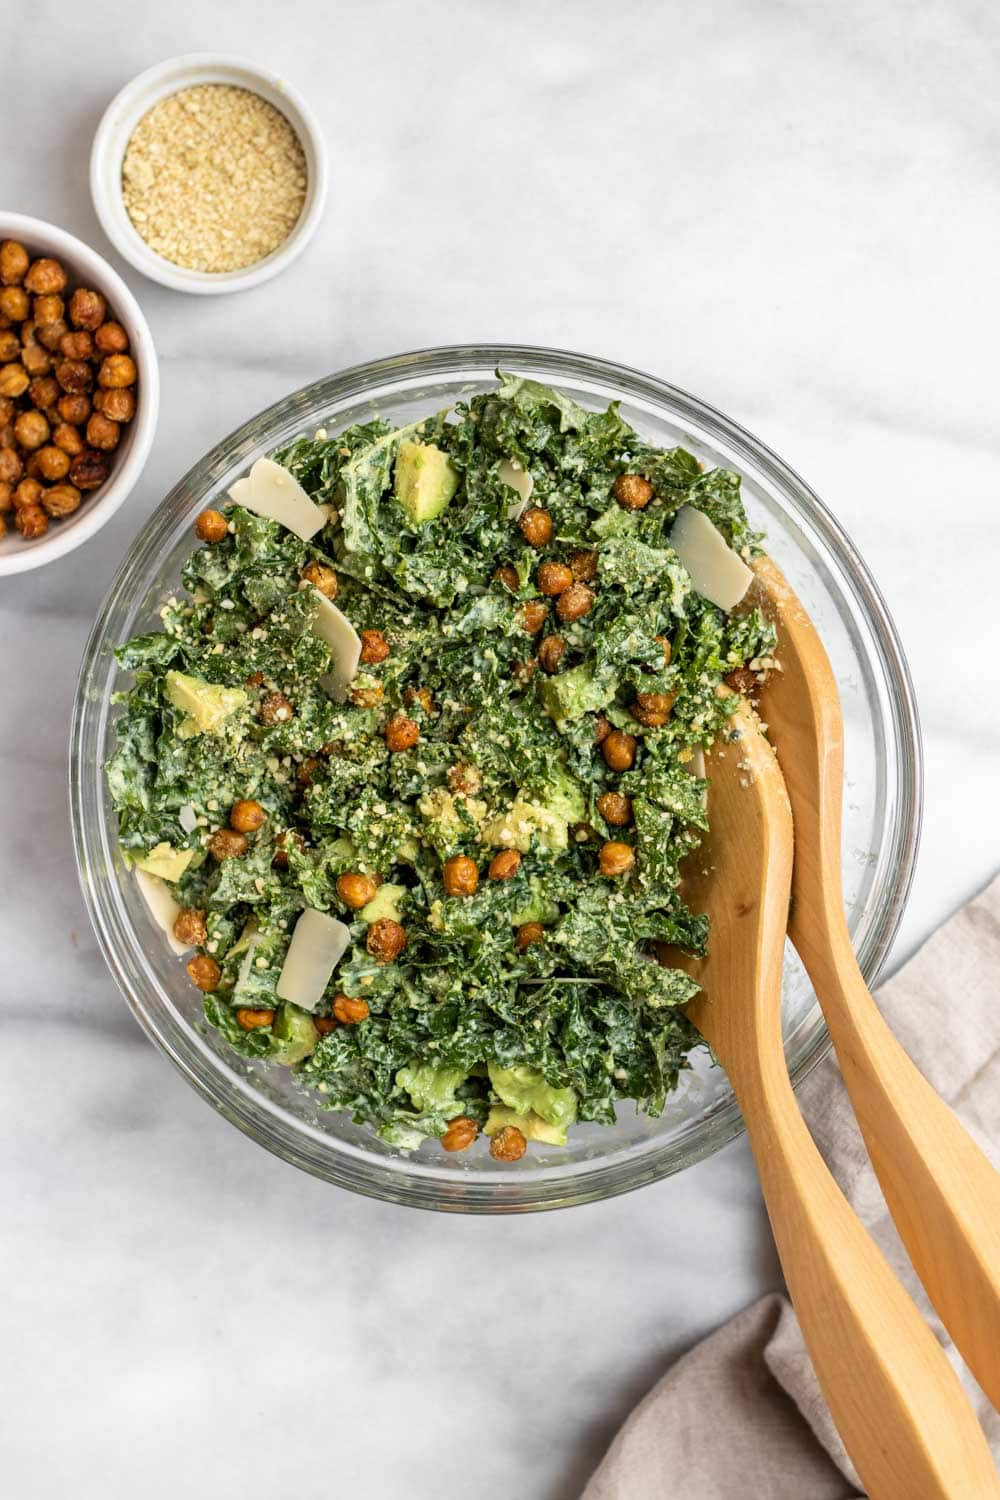 Large glass bowl with kale caesar salad, parmesan and crispy chickpeas on top.